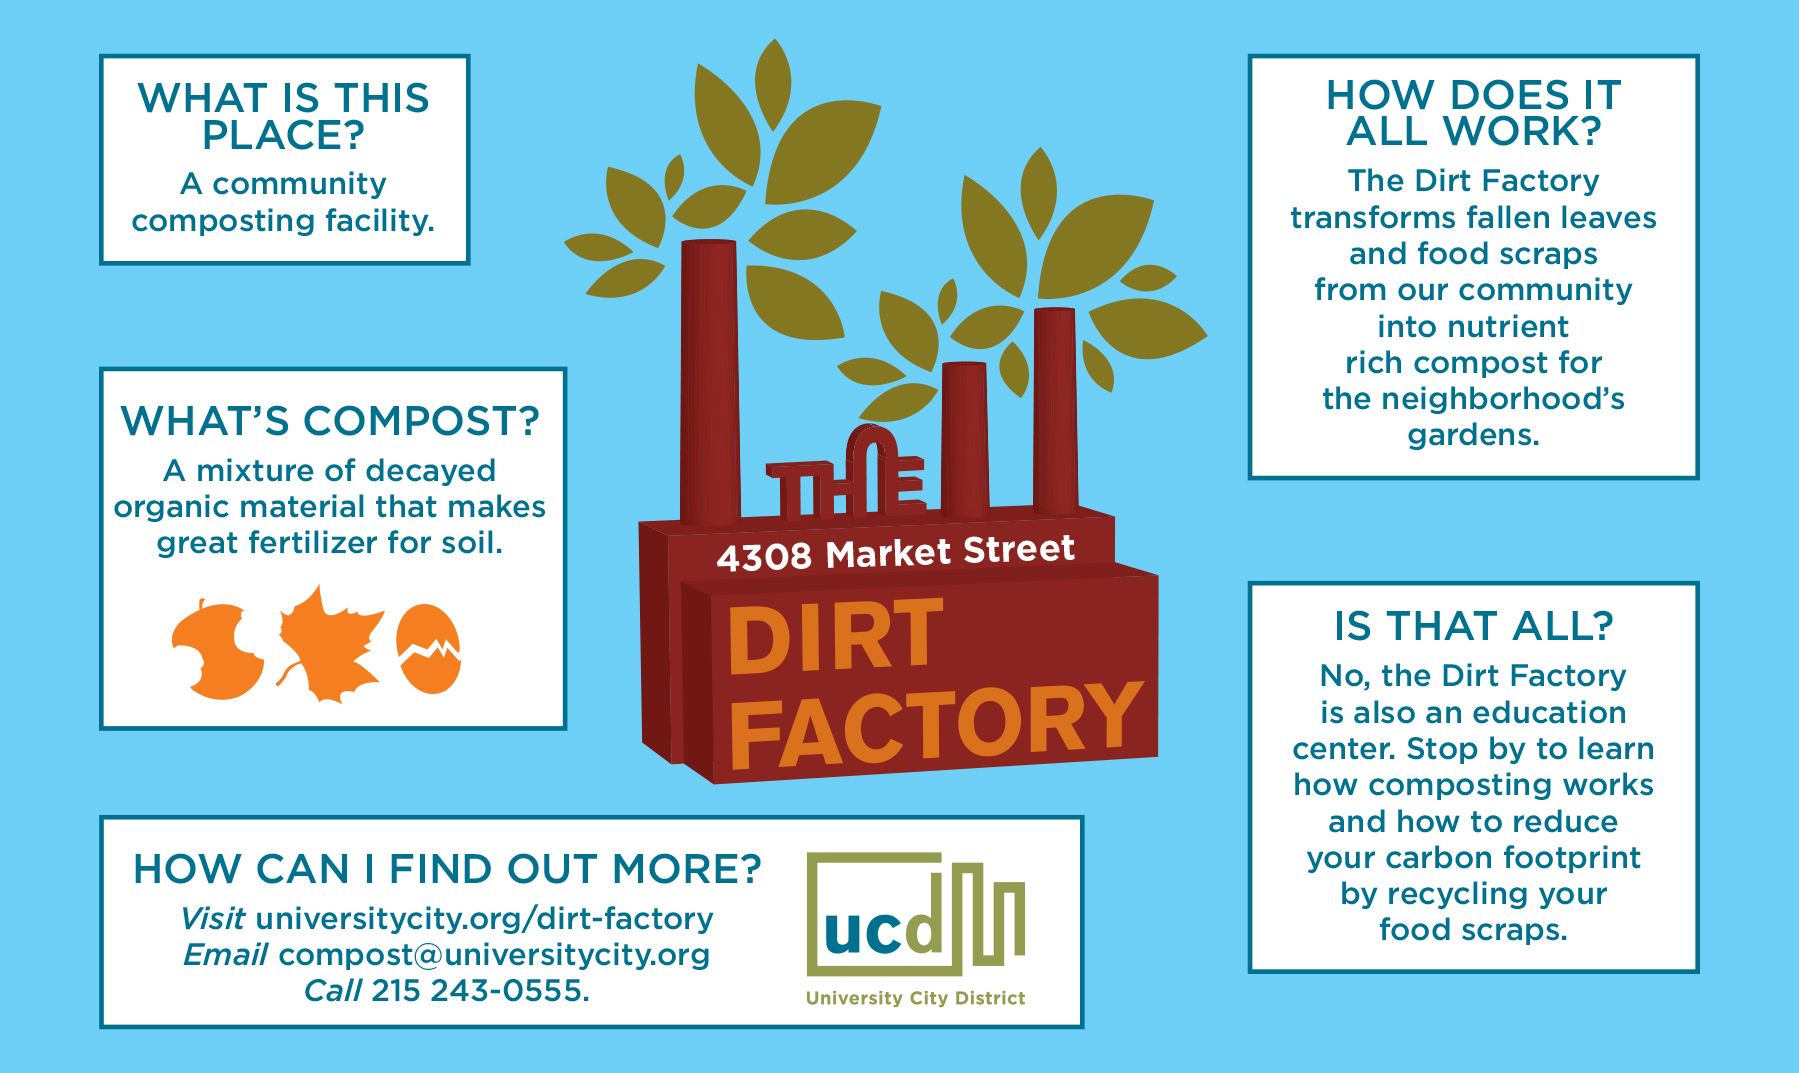 The Dirt Factory at 4308 Market Street, Photo courtesy of UCD